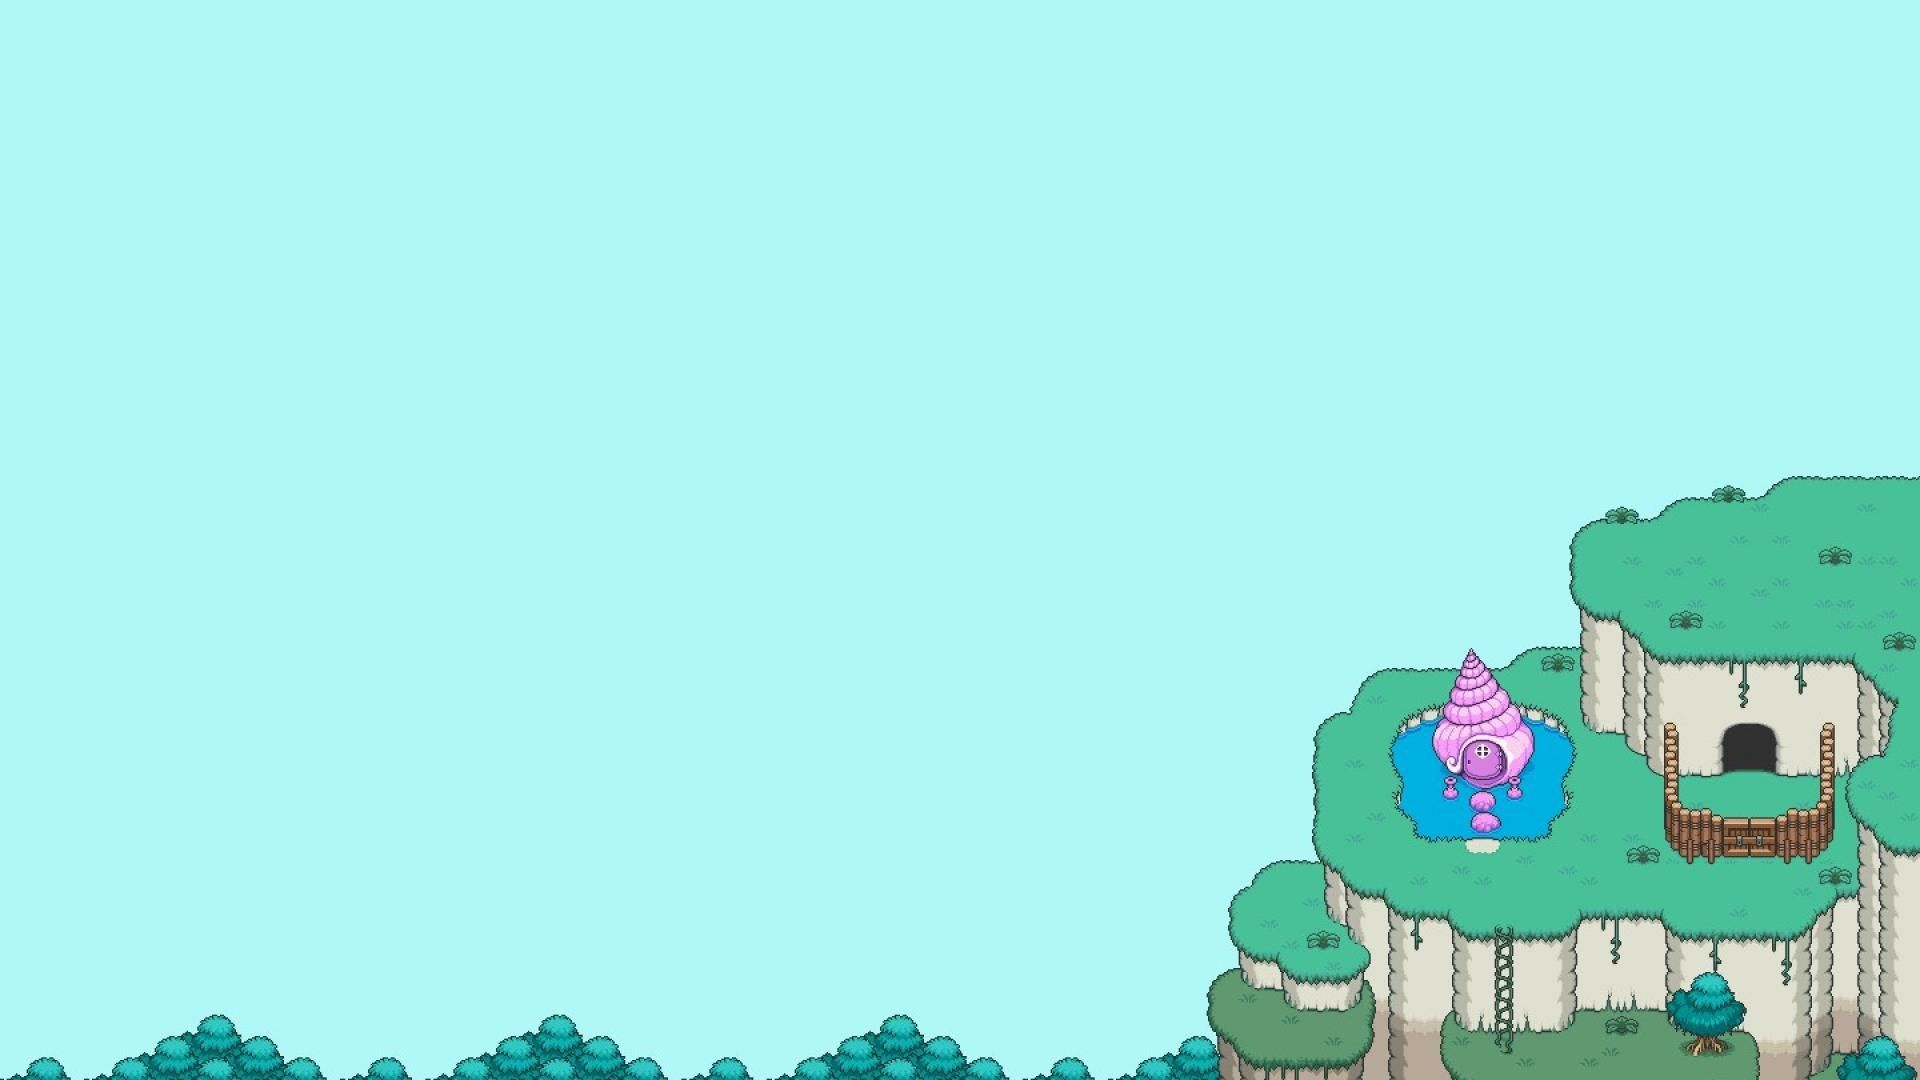 Earthbound Wallpaper Hd Posted By Sarah Johnson